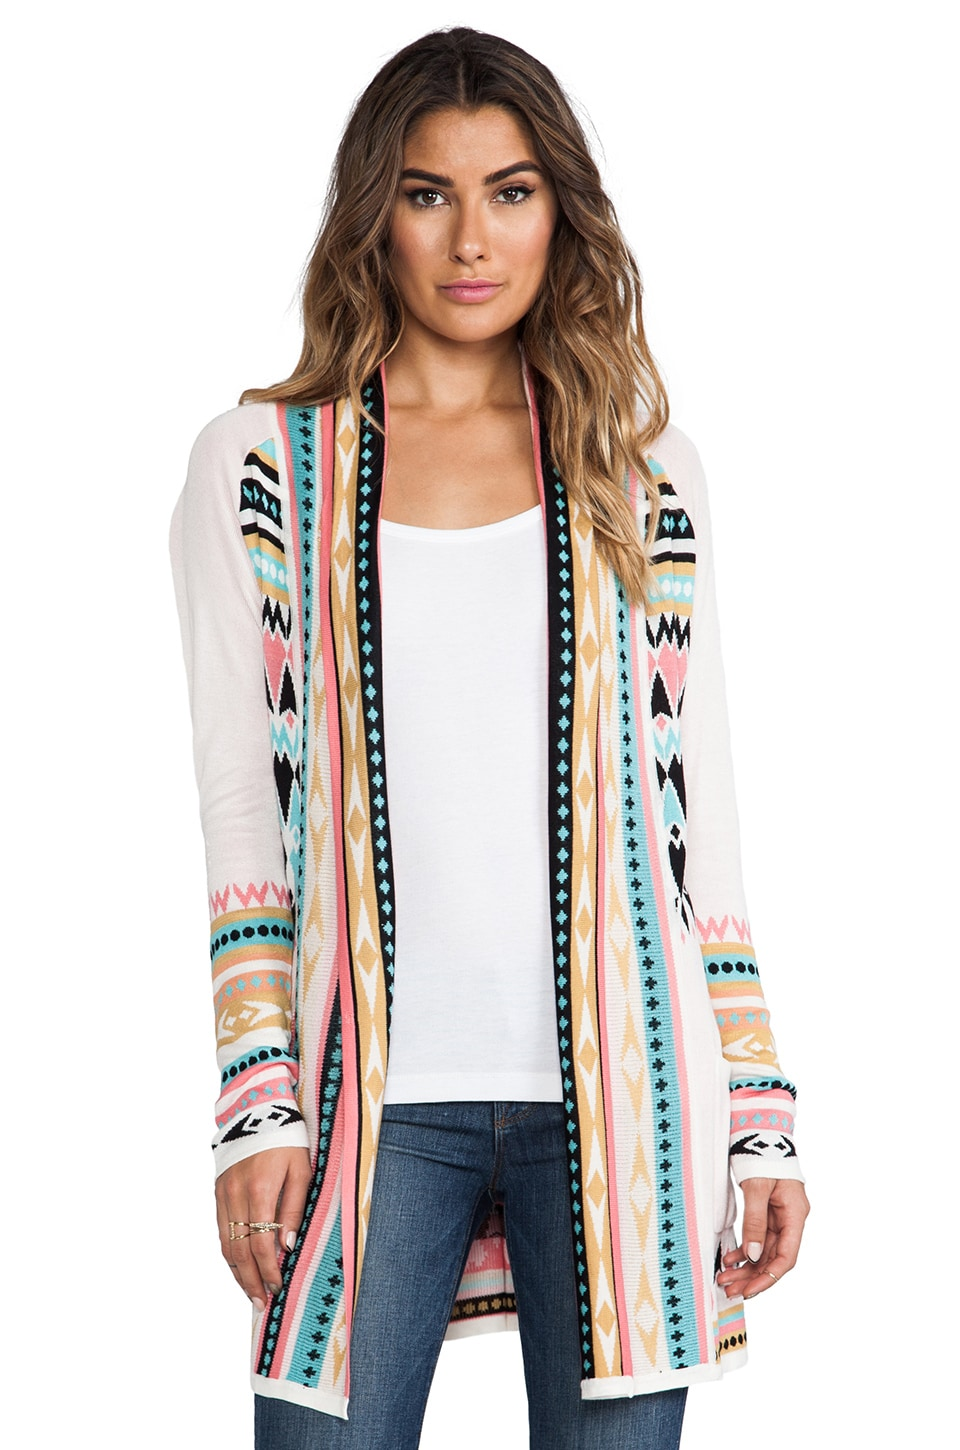 Gypsy 05 Belted Cardigan Sweater in Ivory